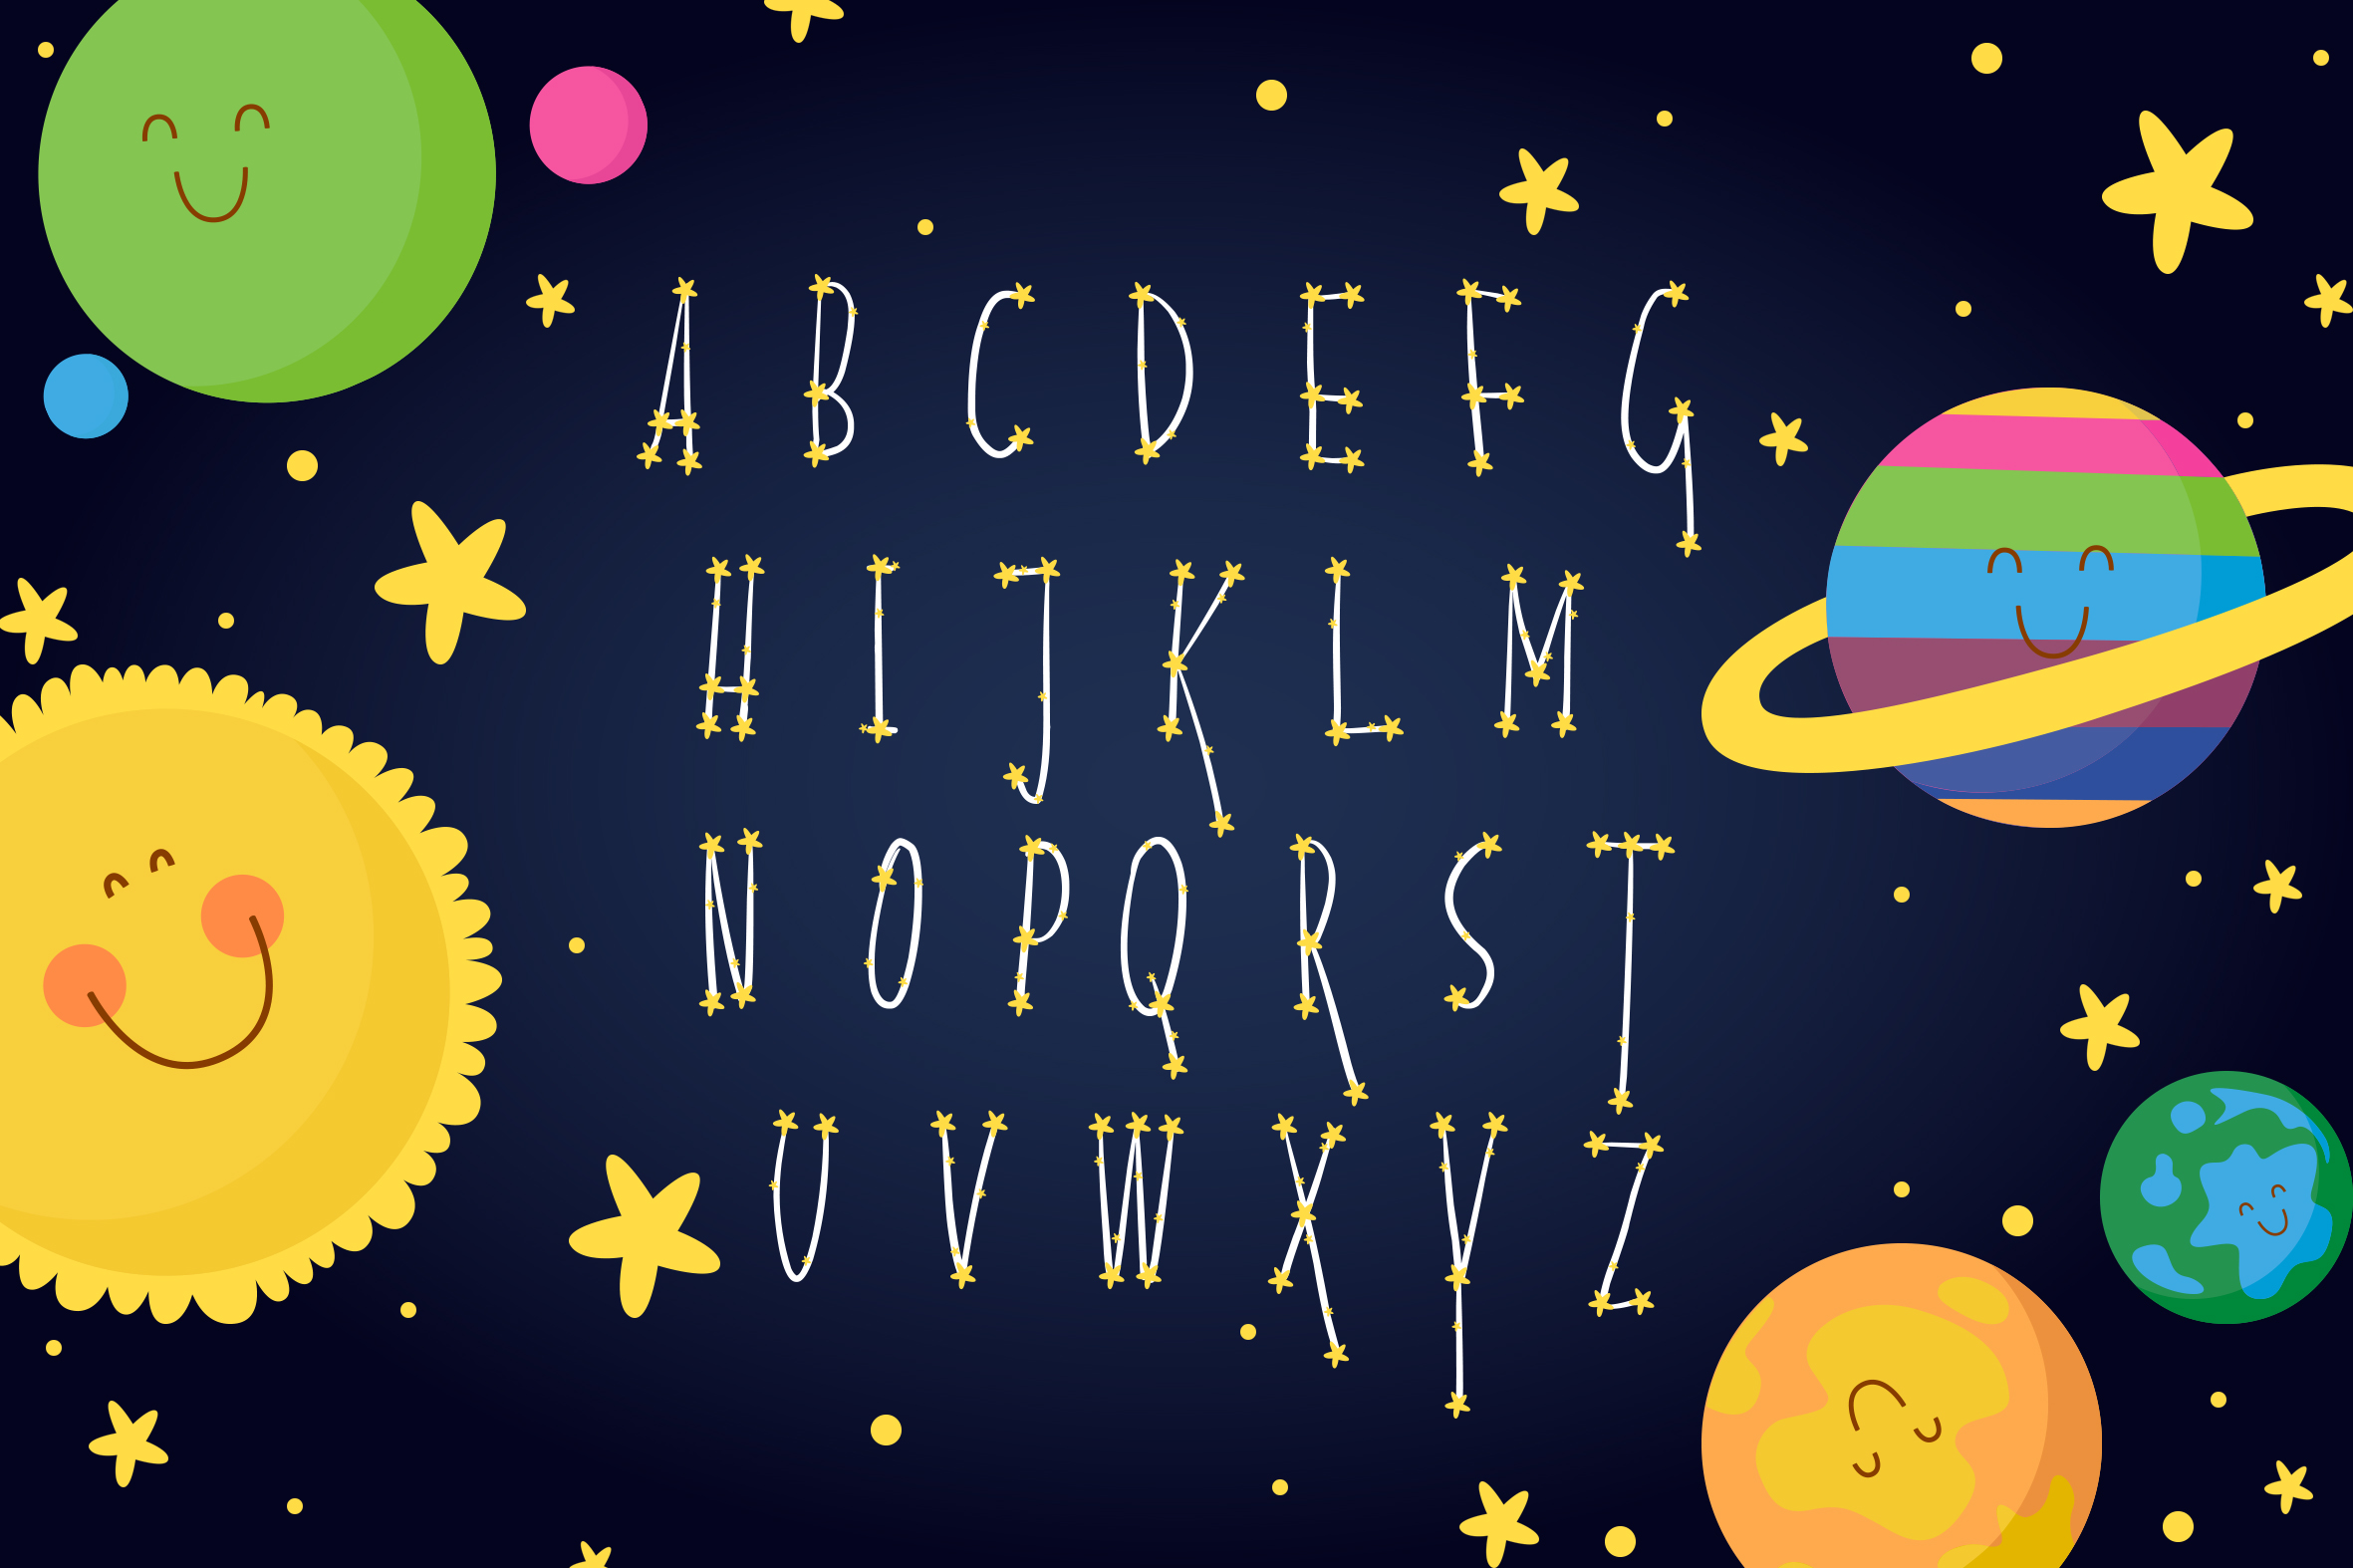 alphabet constellation space example image 2